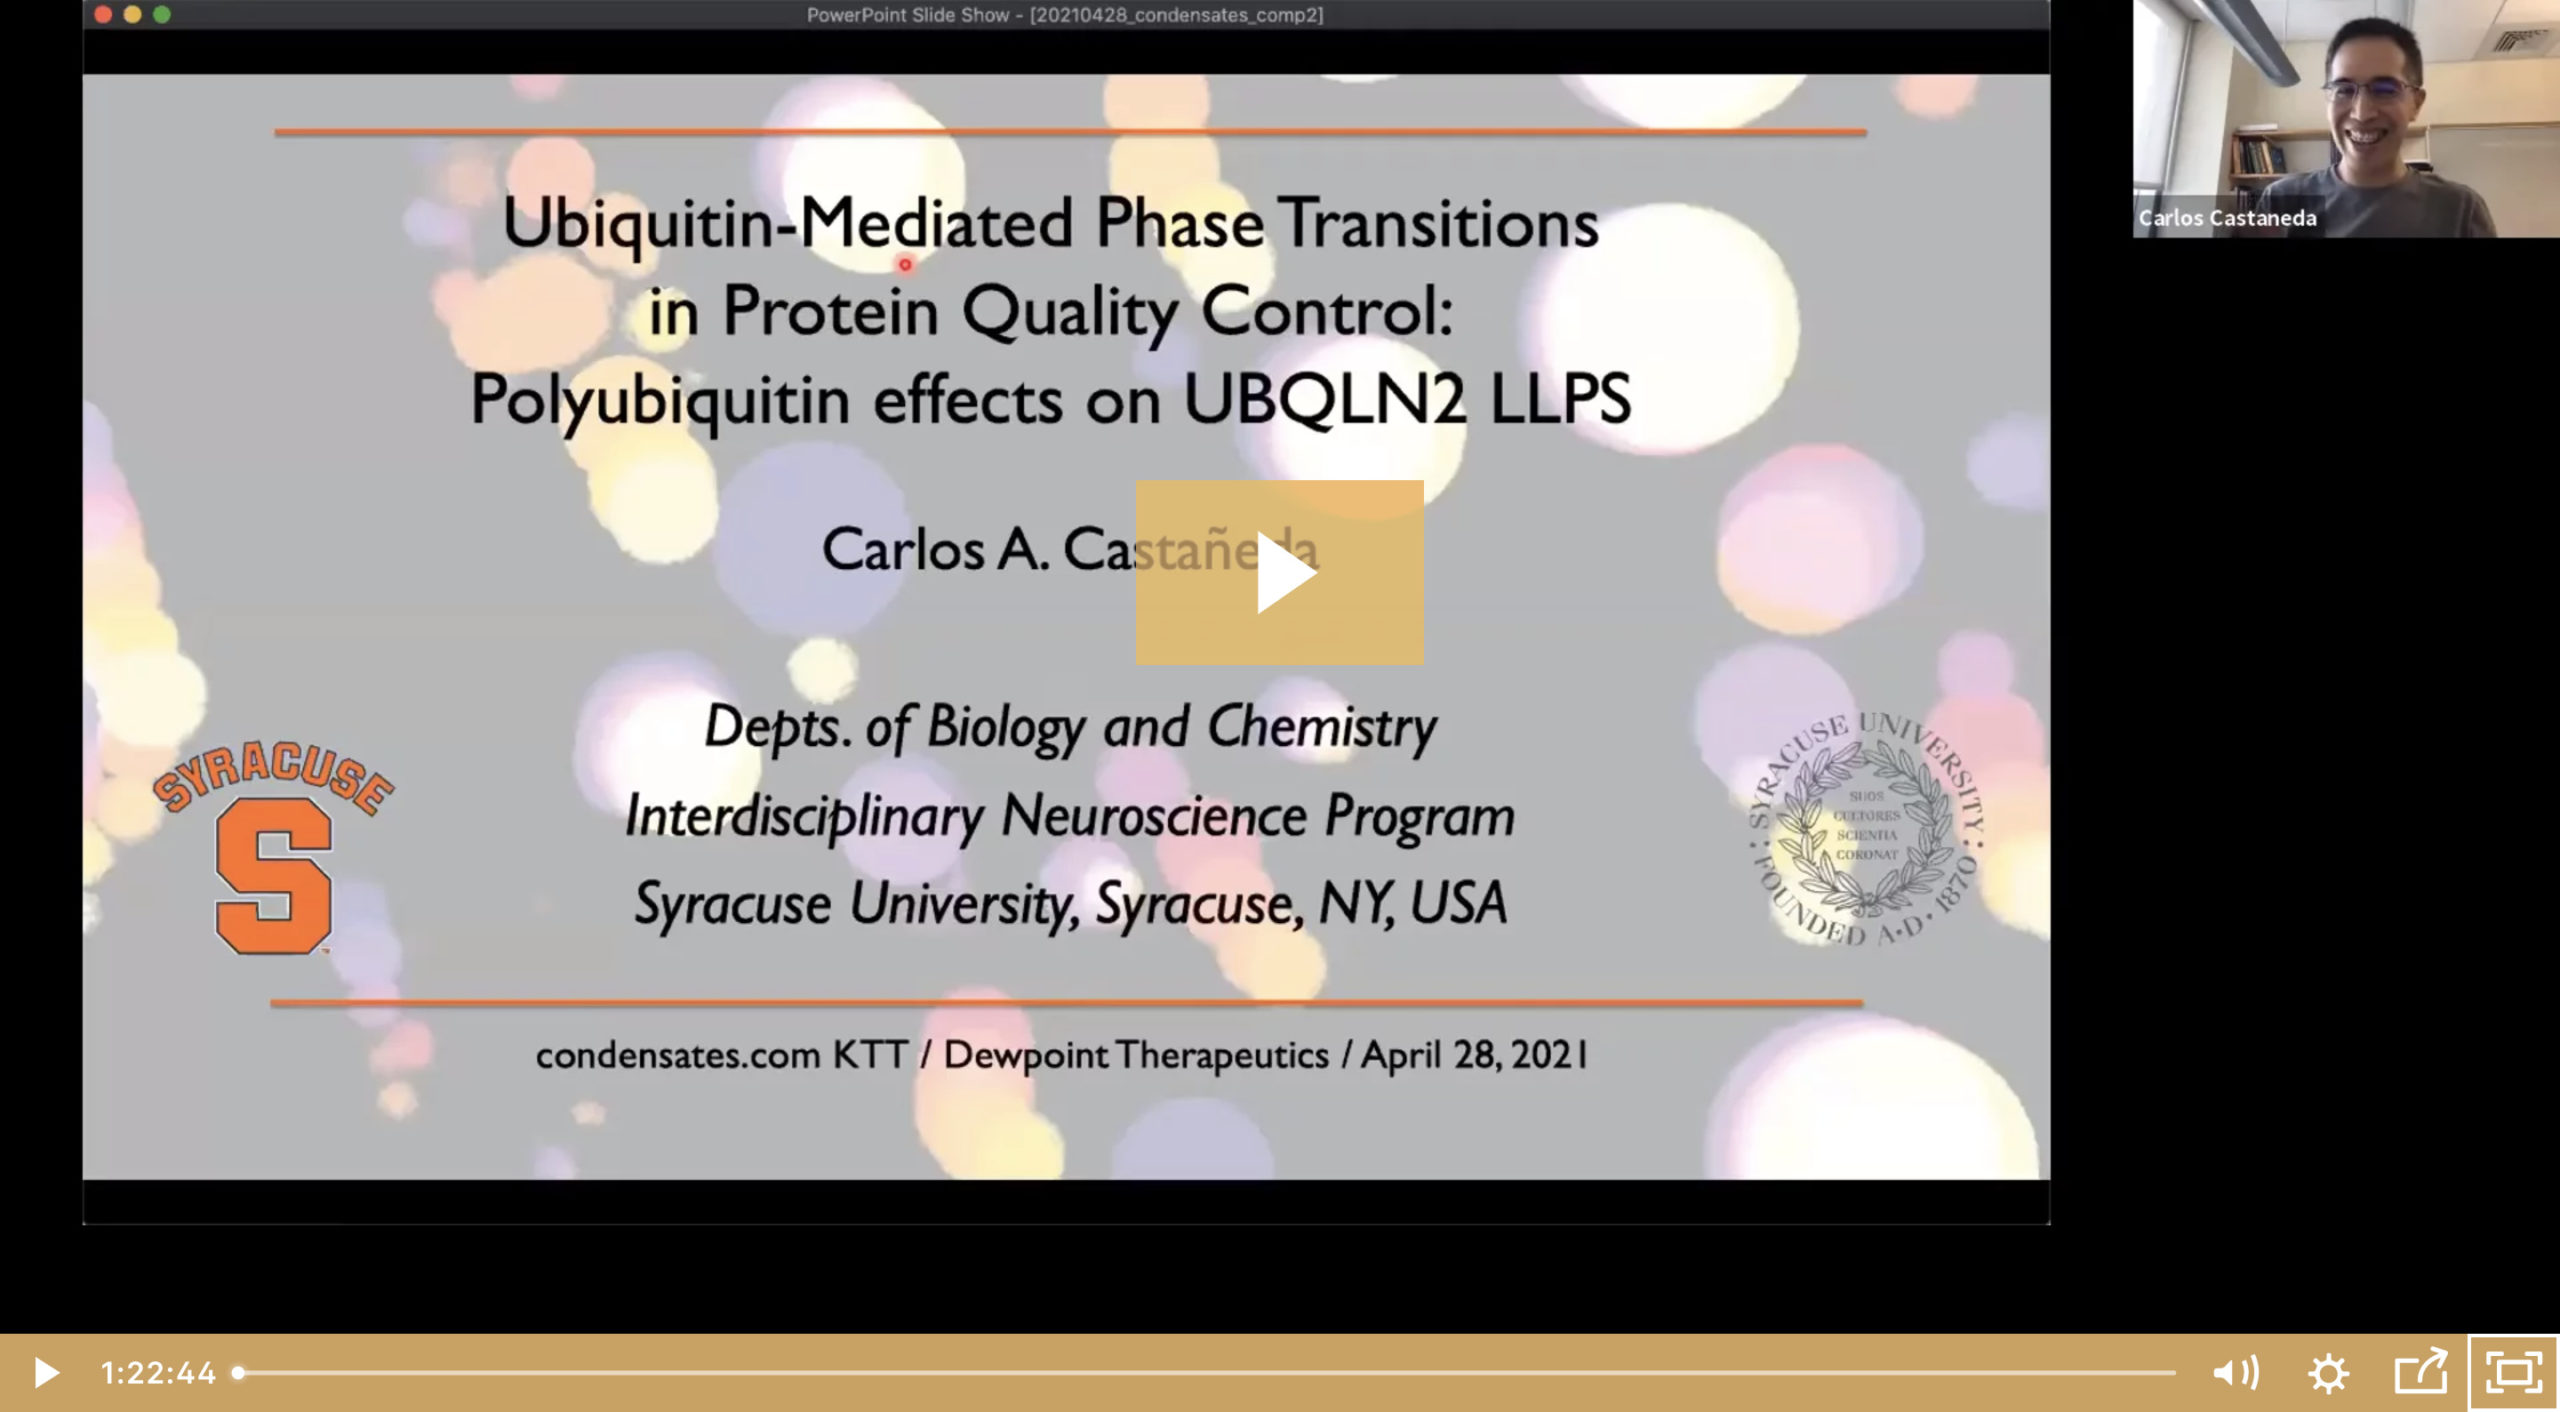 Carlos Castañeda on Ubiquitin-Mediated Phase Transitions in Protein Quality Control